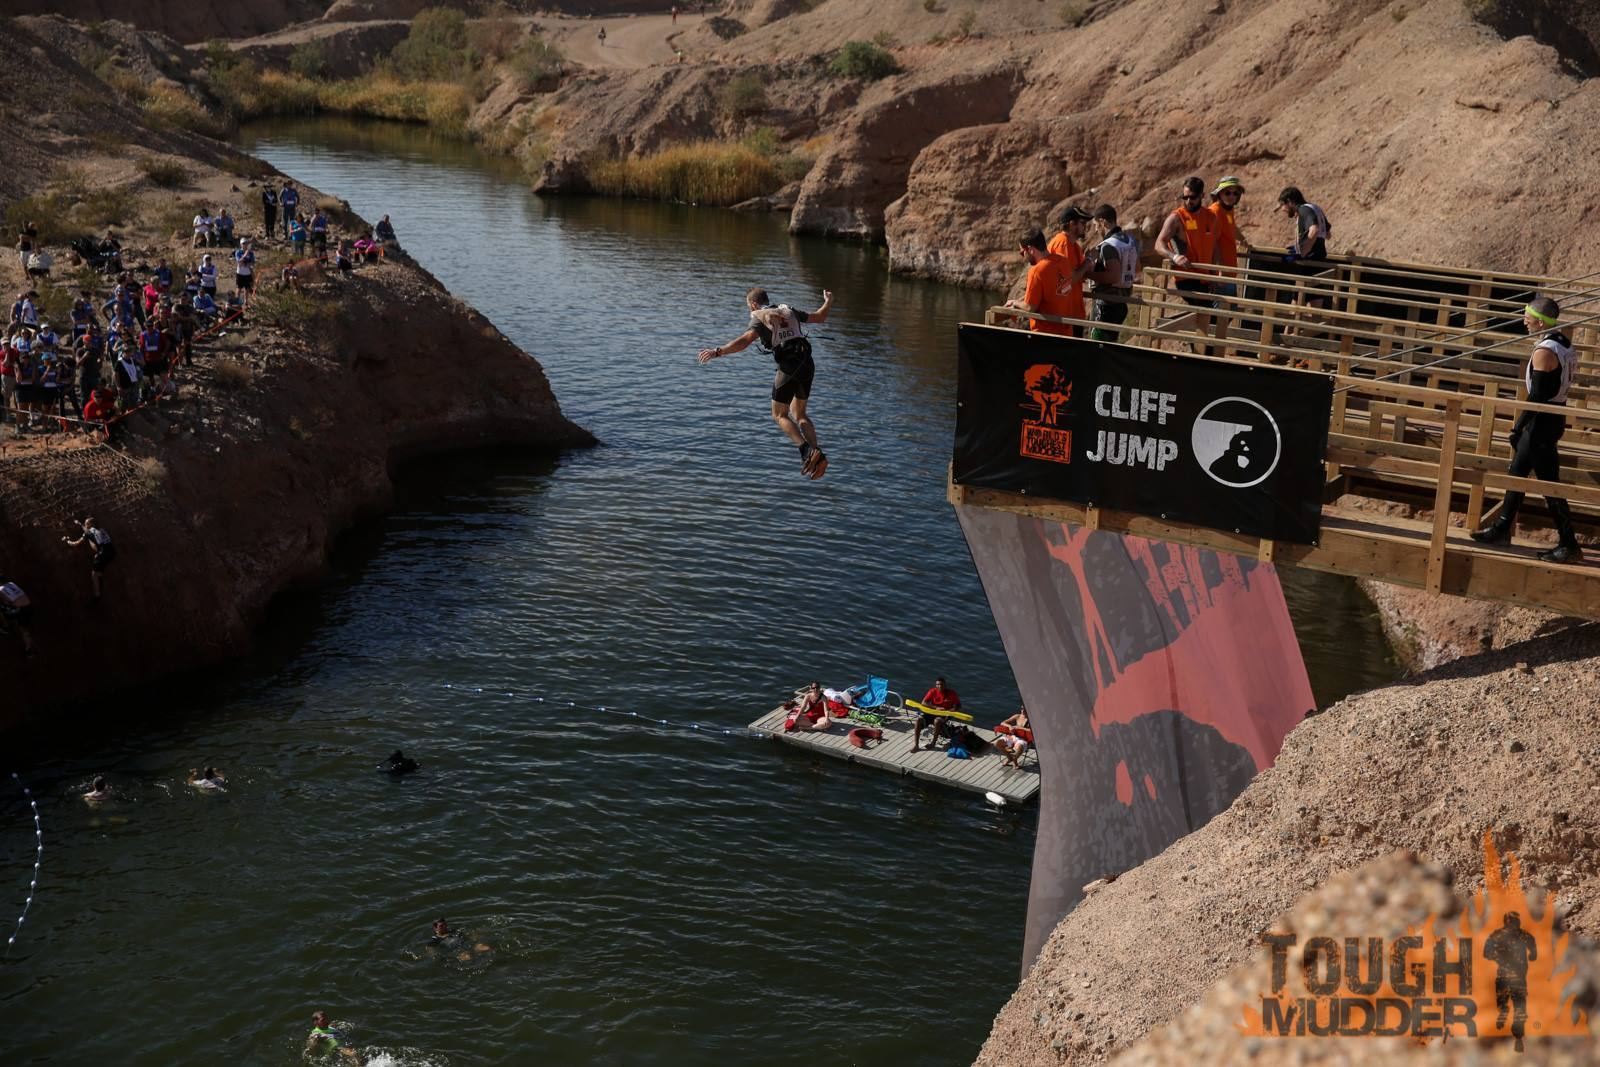 Episode 46: The Ultimate Insider's Guide To The World's Toughest Mudder